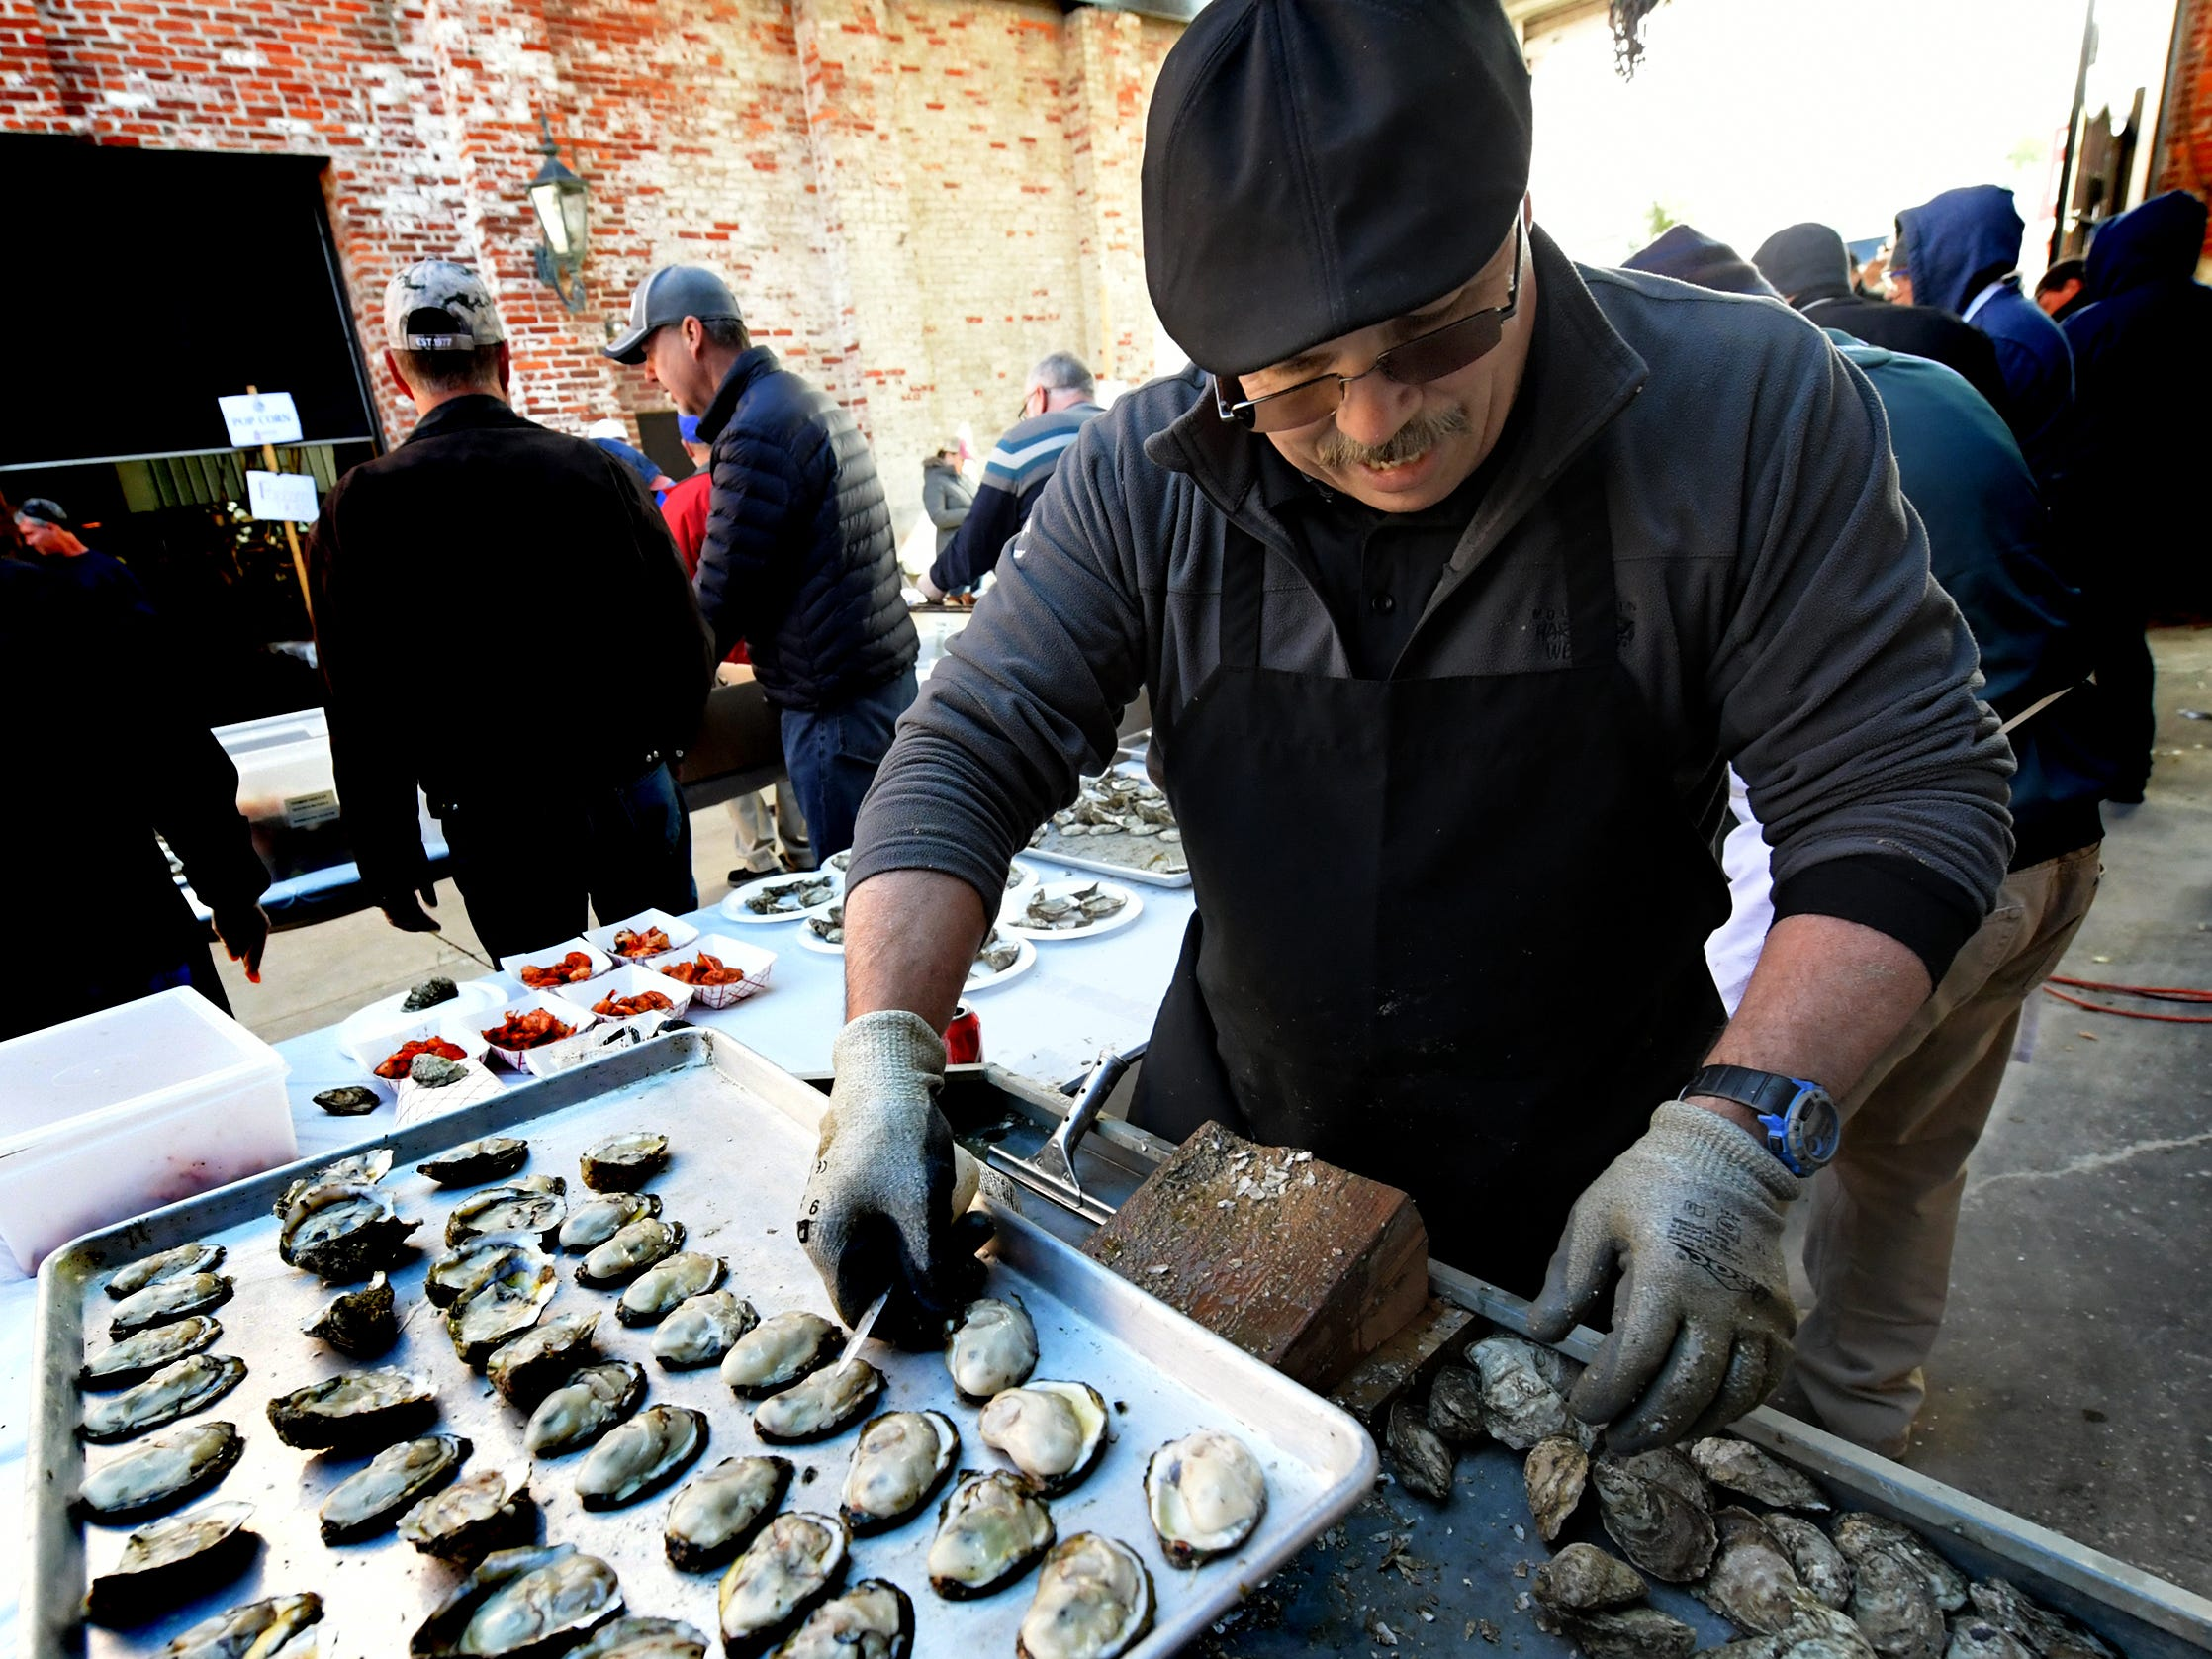 Henry's Seafood employee Henry Thiess shucks oysters at the Agricultural & Industrial Museum during the History On The Half Shell fundraising event sponsored by the York County History Center Sunday, October 21, 2018. The annual event offered oysters, a variety of food, drink, music, children's activities and historical presentations. Bill Kalina photo